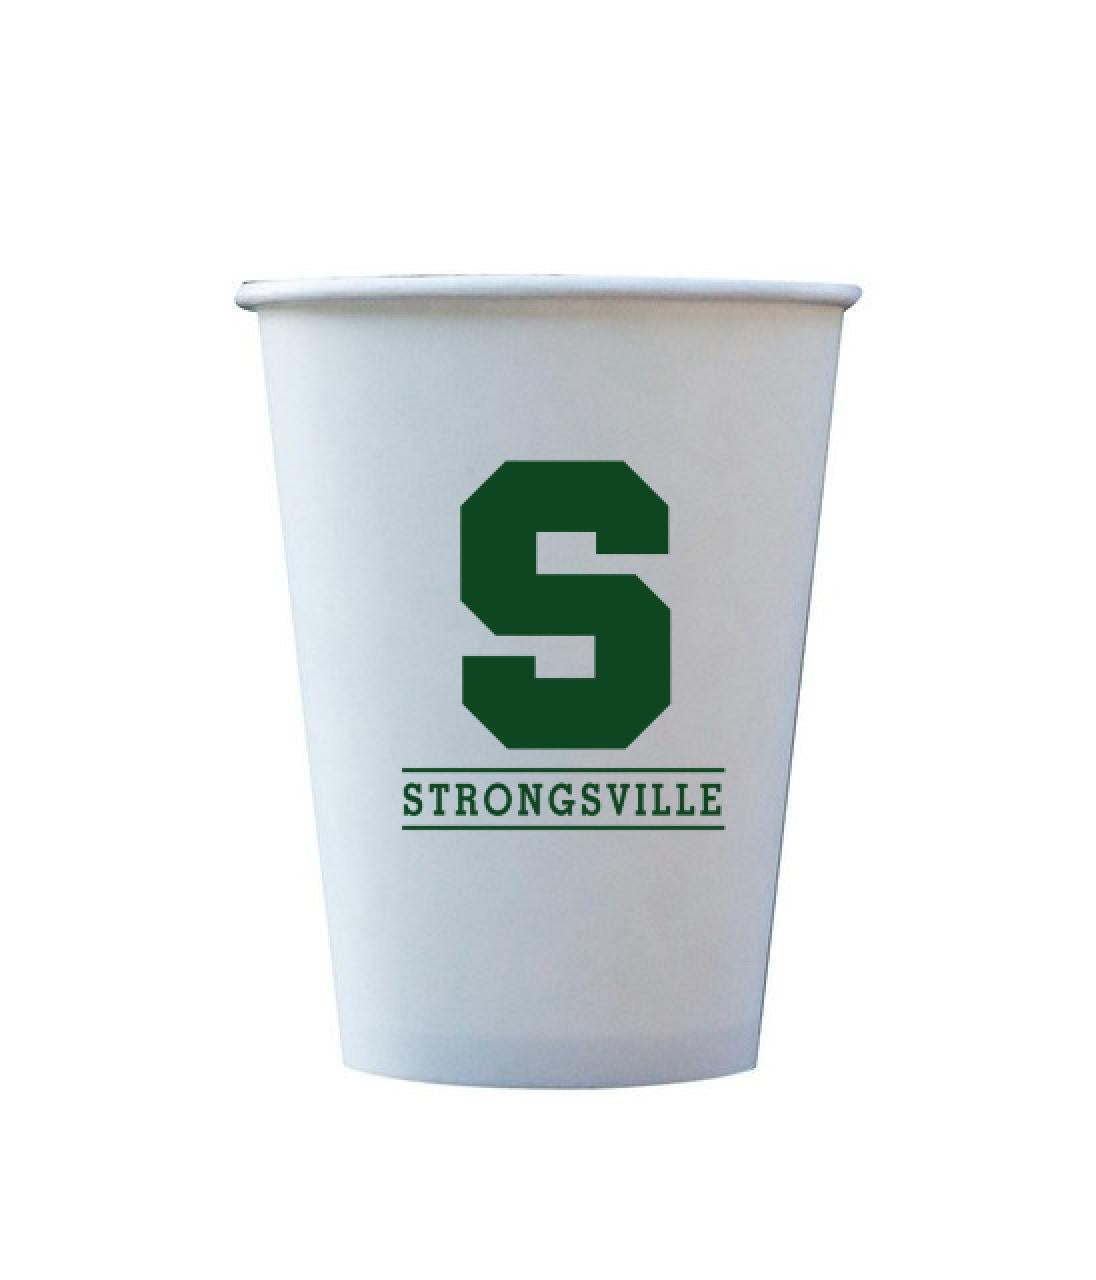 Strongsville 12 OZ. Hot/Cold Paper Cups